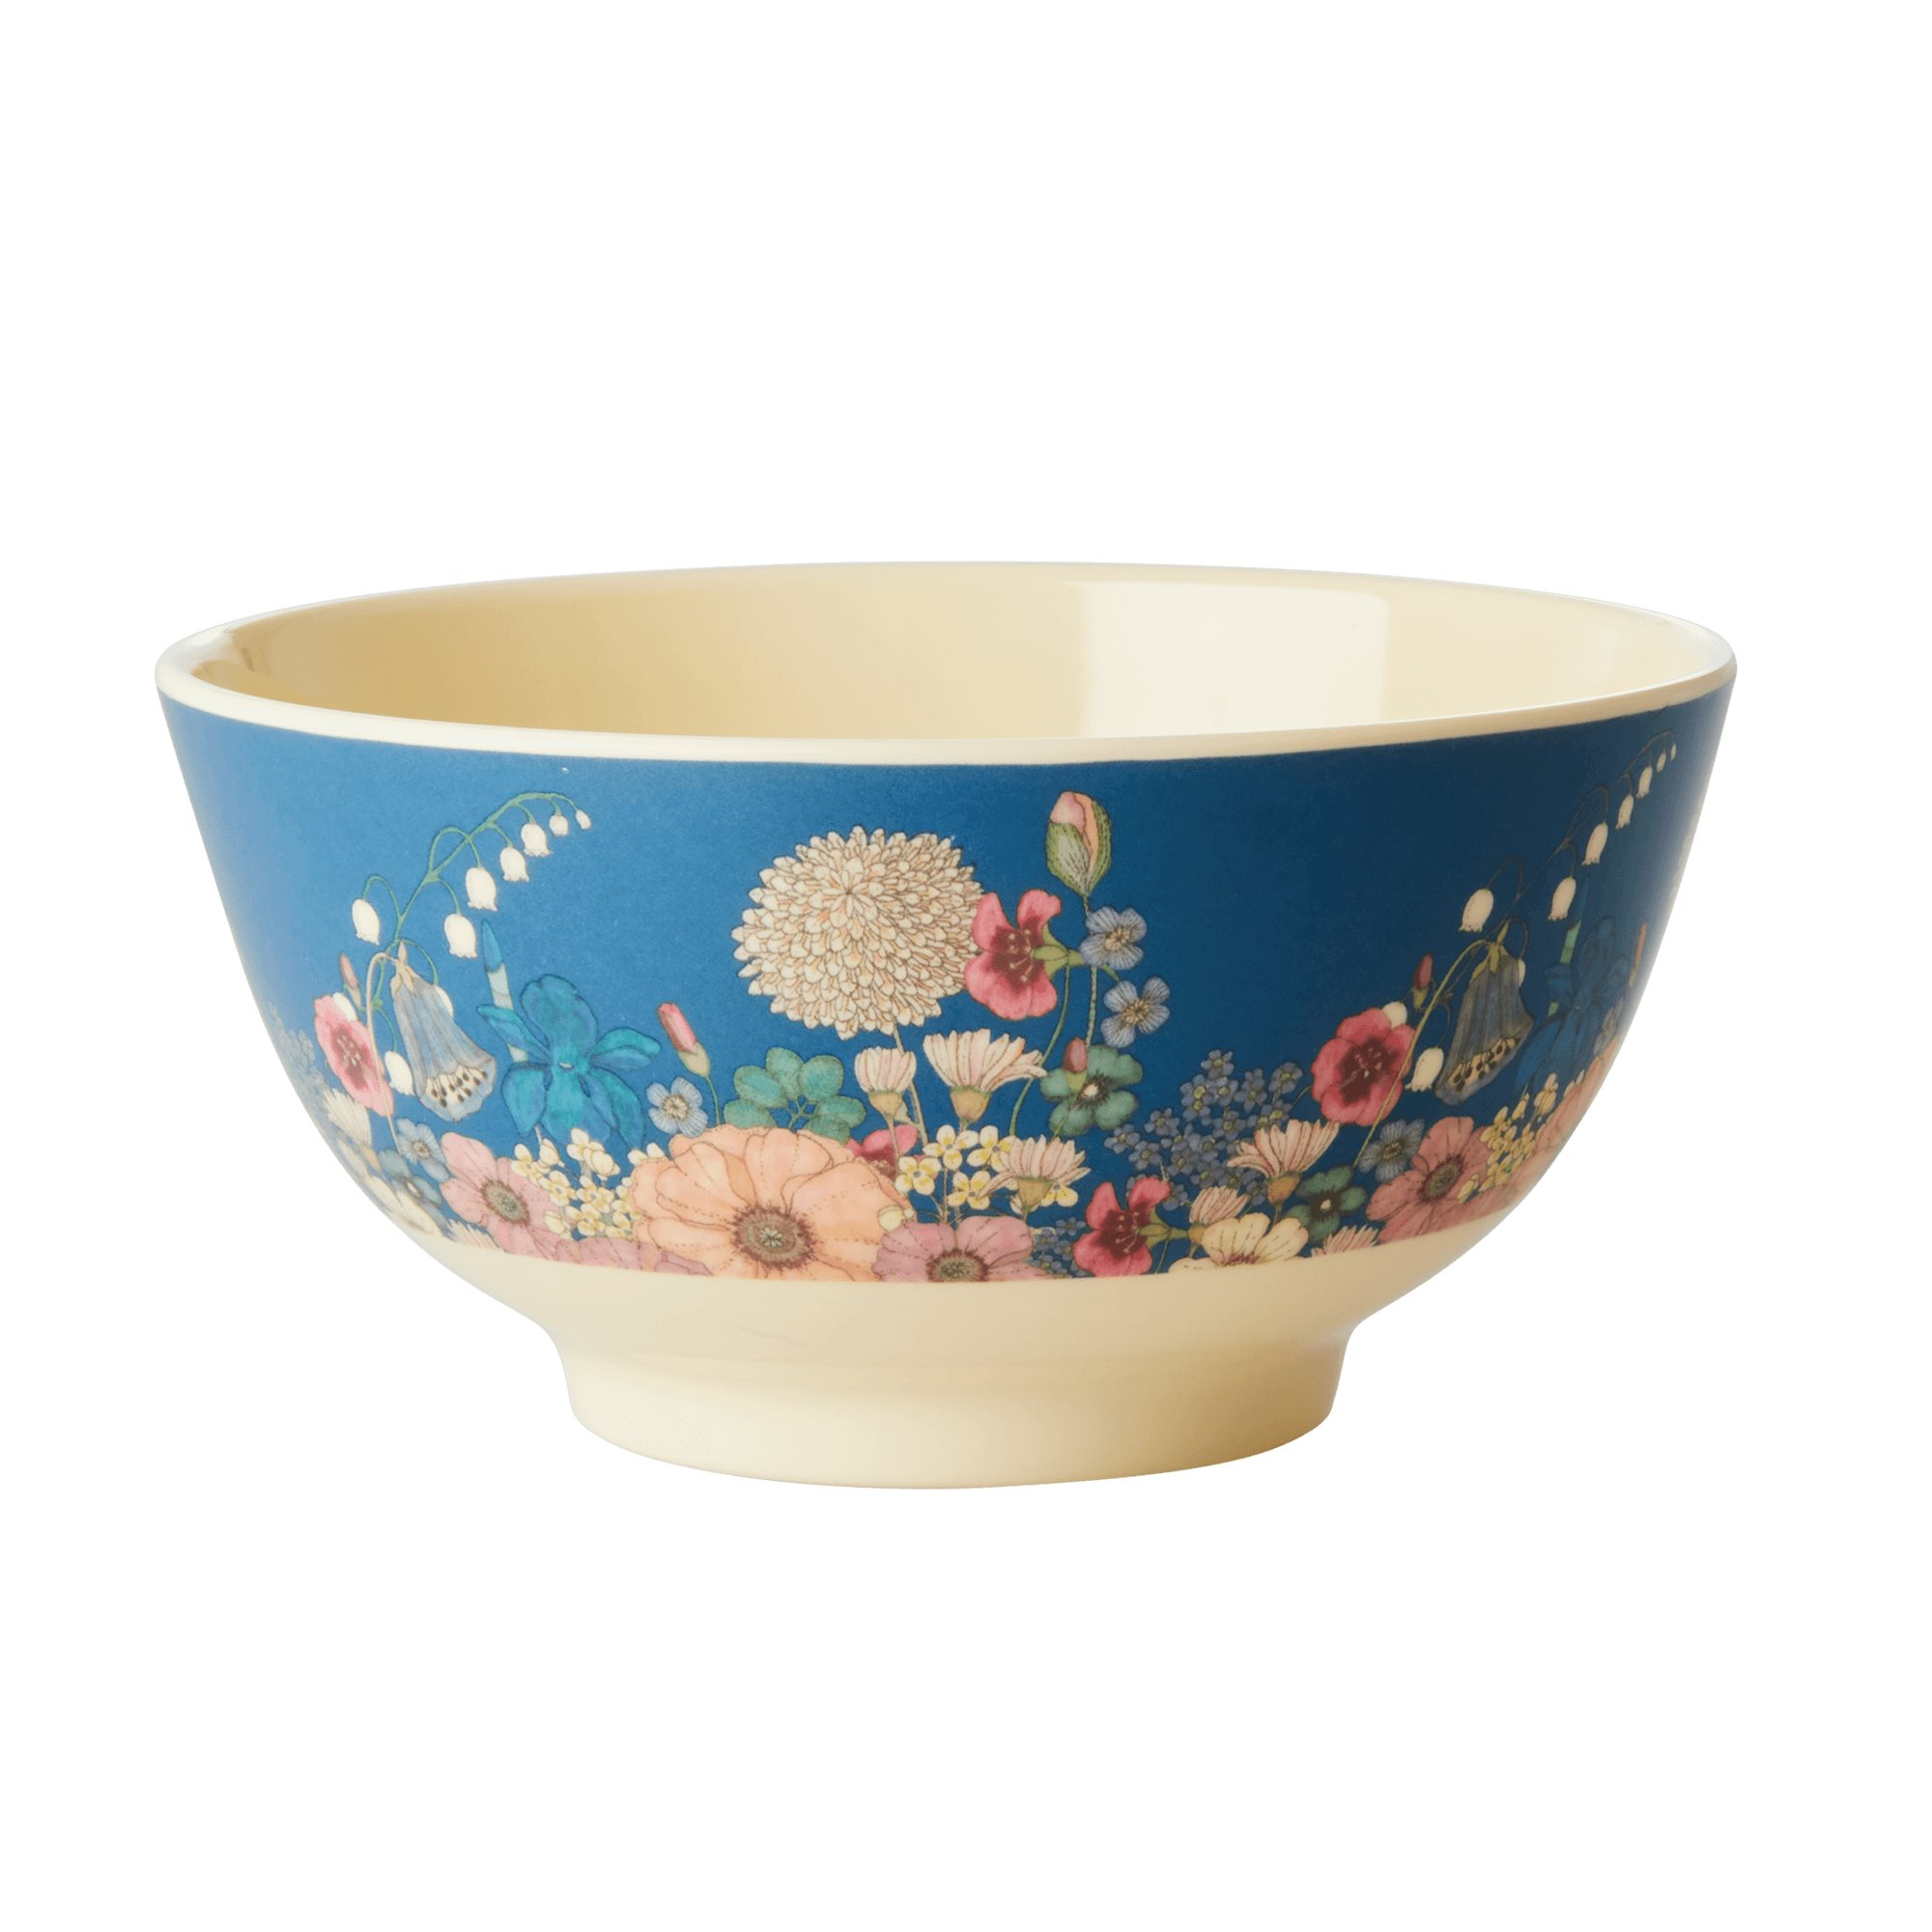 Medium Melamine Bowl - Flower Collage Print - rice